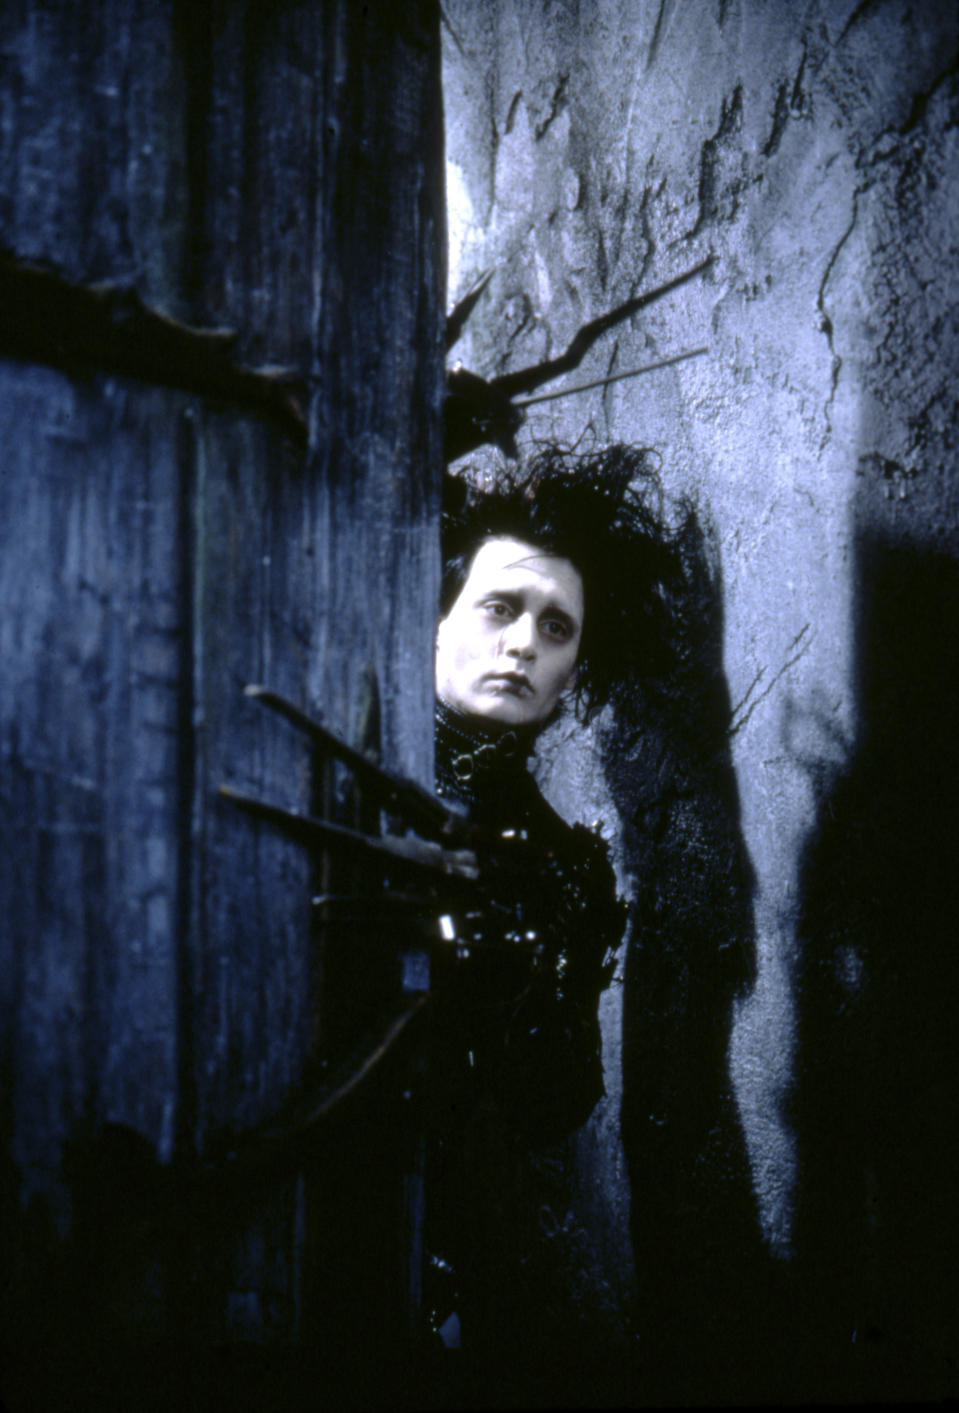 American actor Johnny Depp on the set of Edward Scissorhands, written and directed by Tim Burton. (Photo by Twentieth Century Fox Pictures/Sunset Boulevard/Corbis via Getty Images)